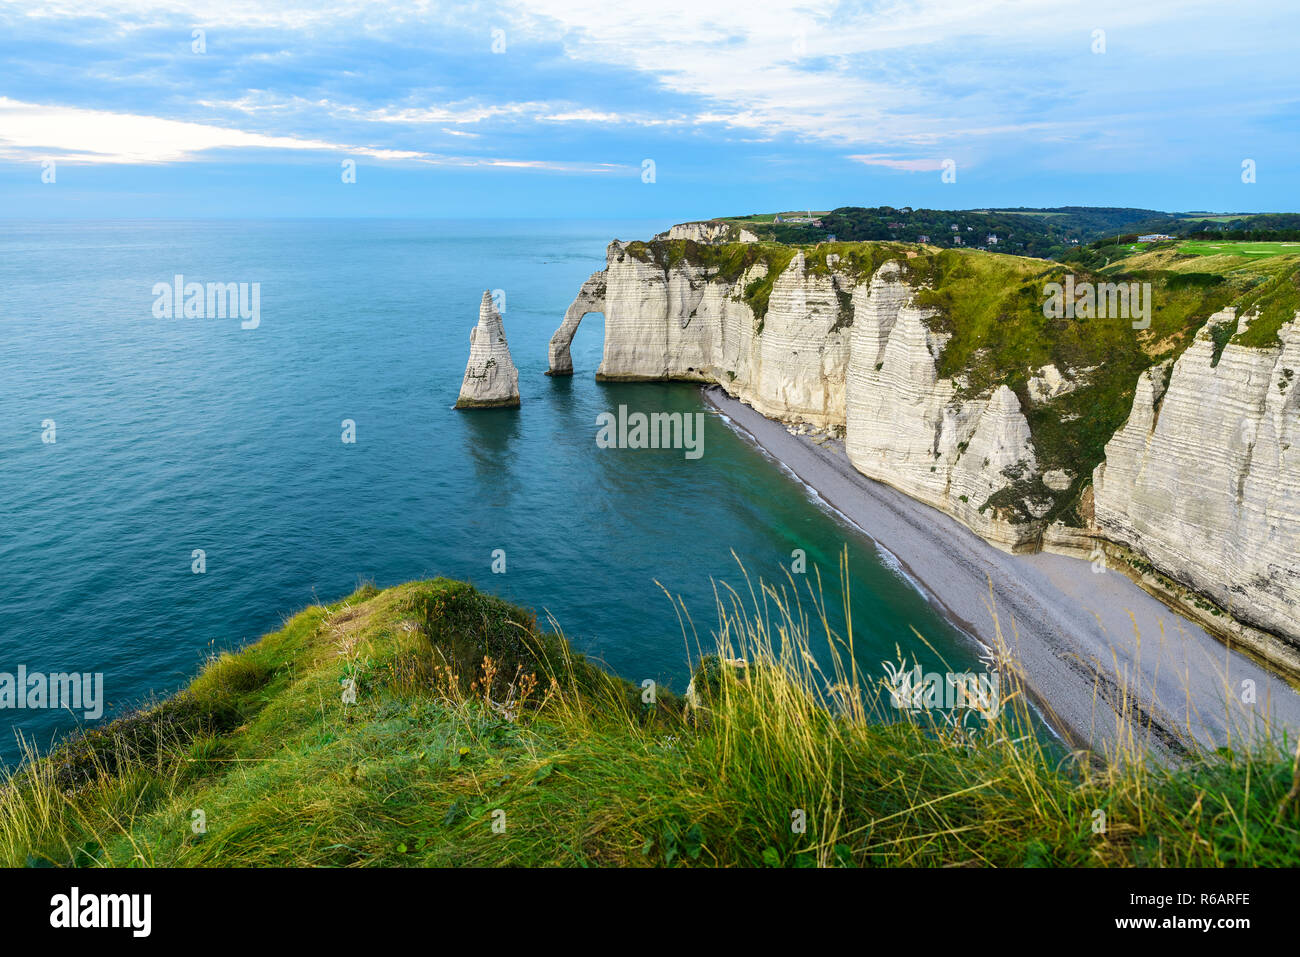 cliffs Aval and Needle of Etretat and beautiful famous coastline during the tide. Normandy, France, Europe - Stock Image